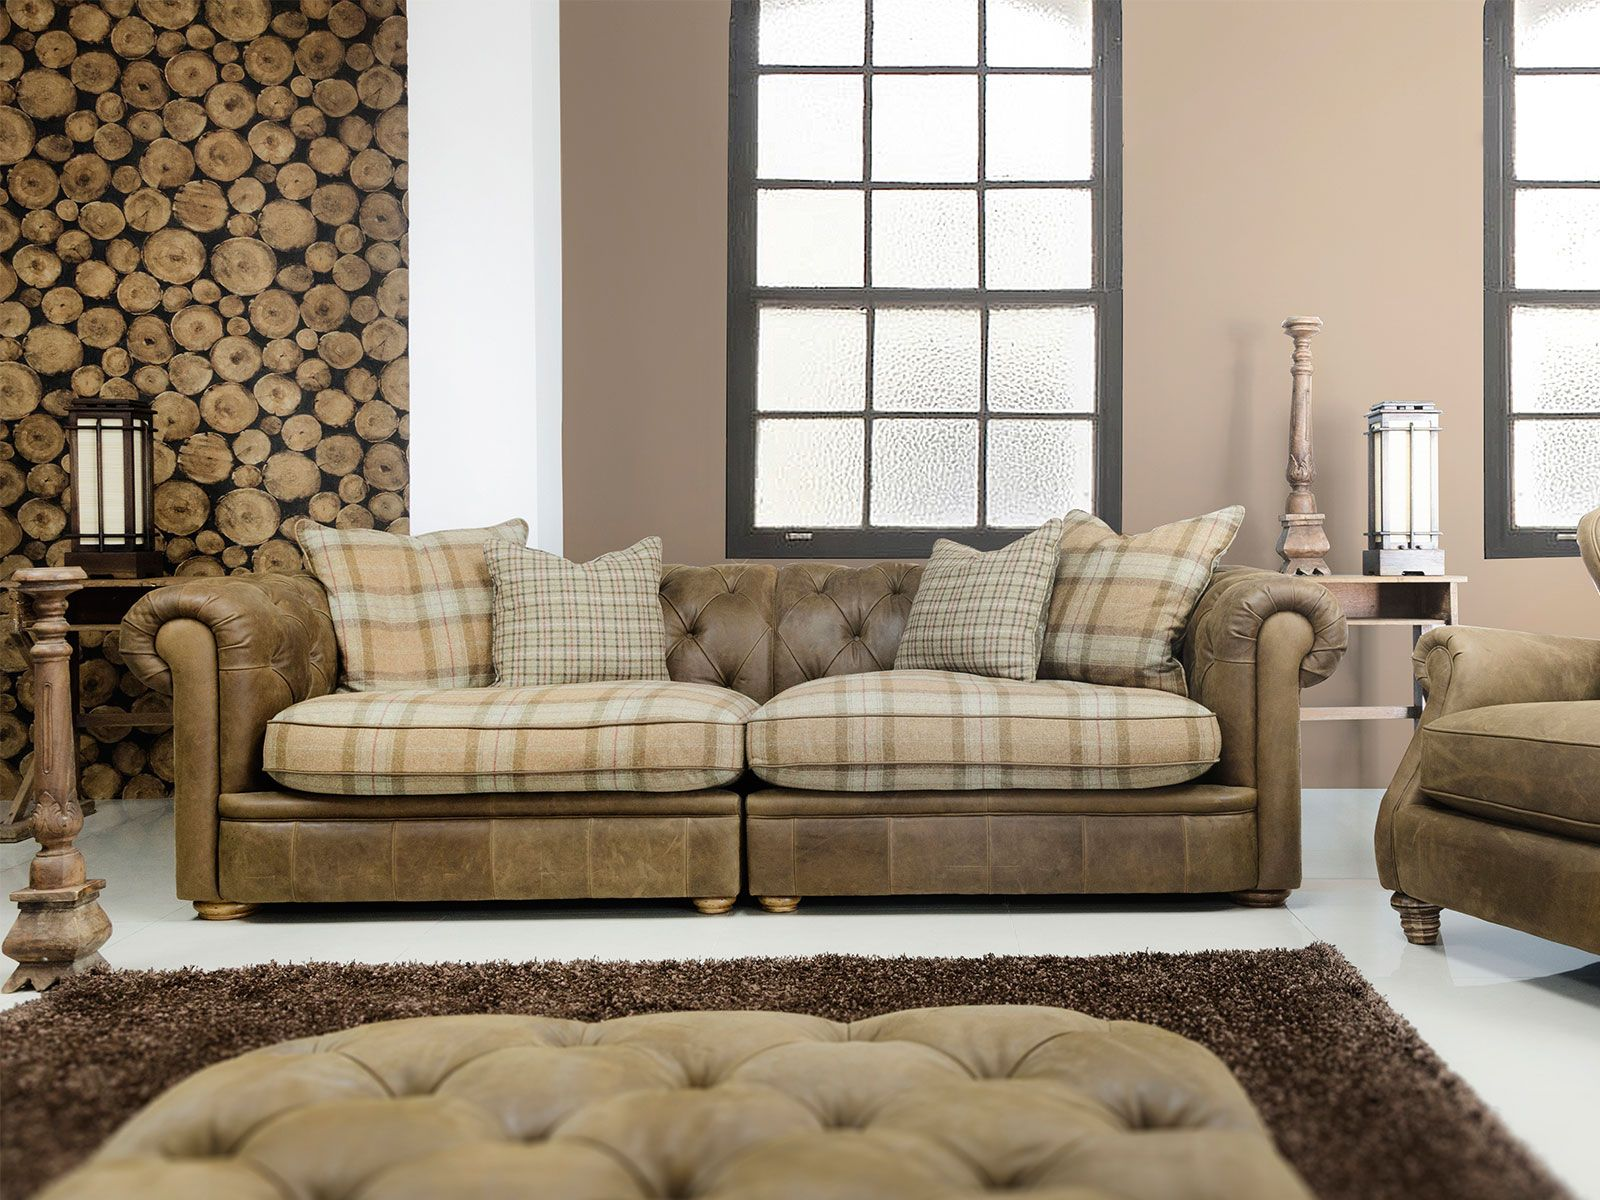 Soft Vintage Looking Leather And Plaid Fabric Combination Chesterfield Style Sofa